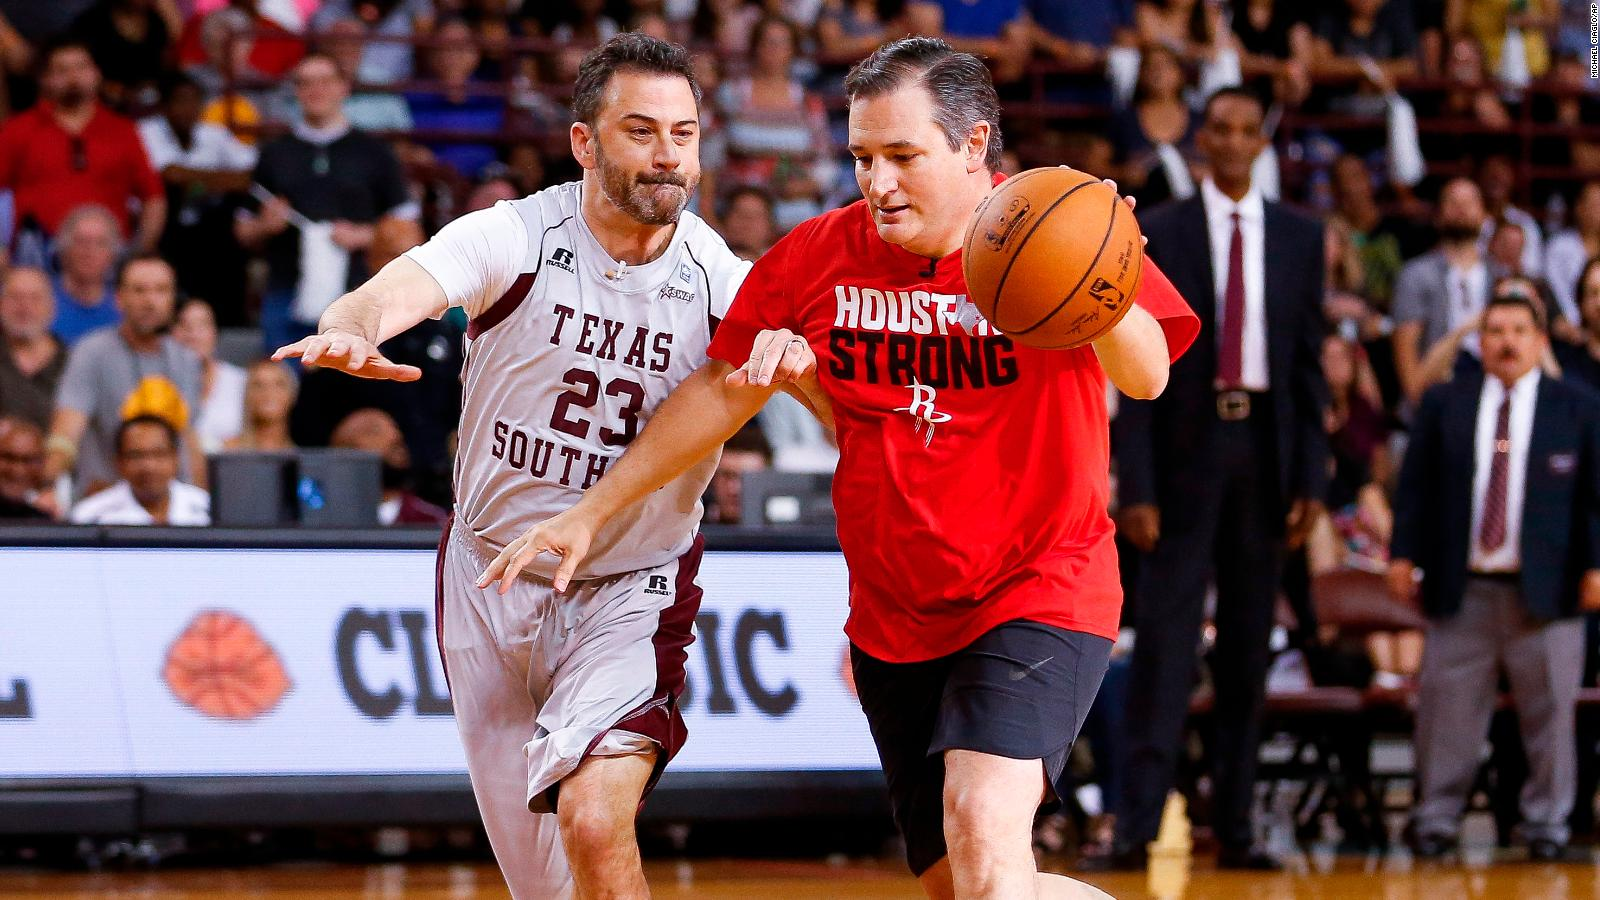 ted cruz bests jimmy kimmel in sloppy one on one basketball game